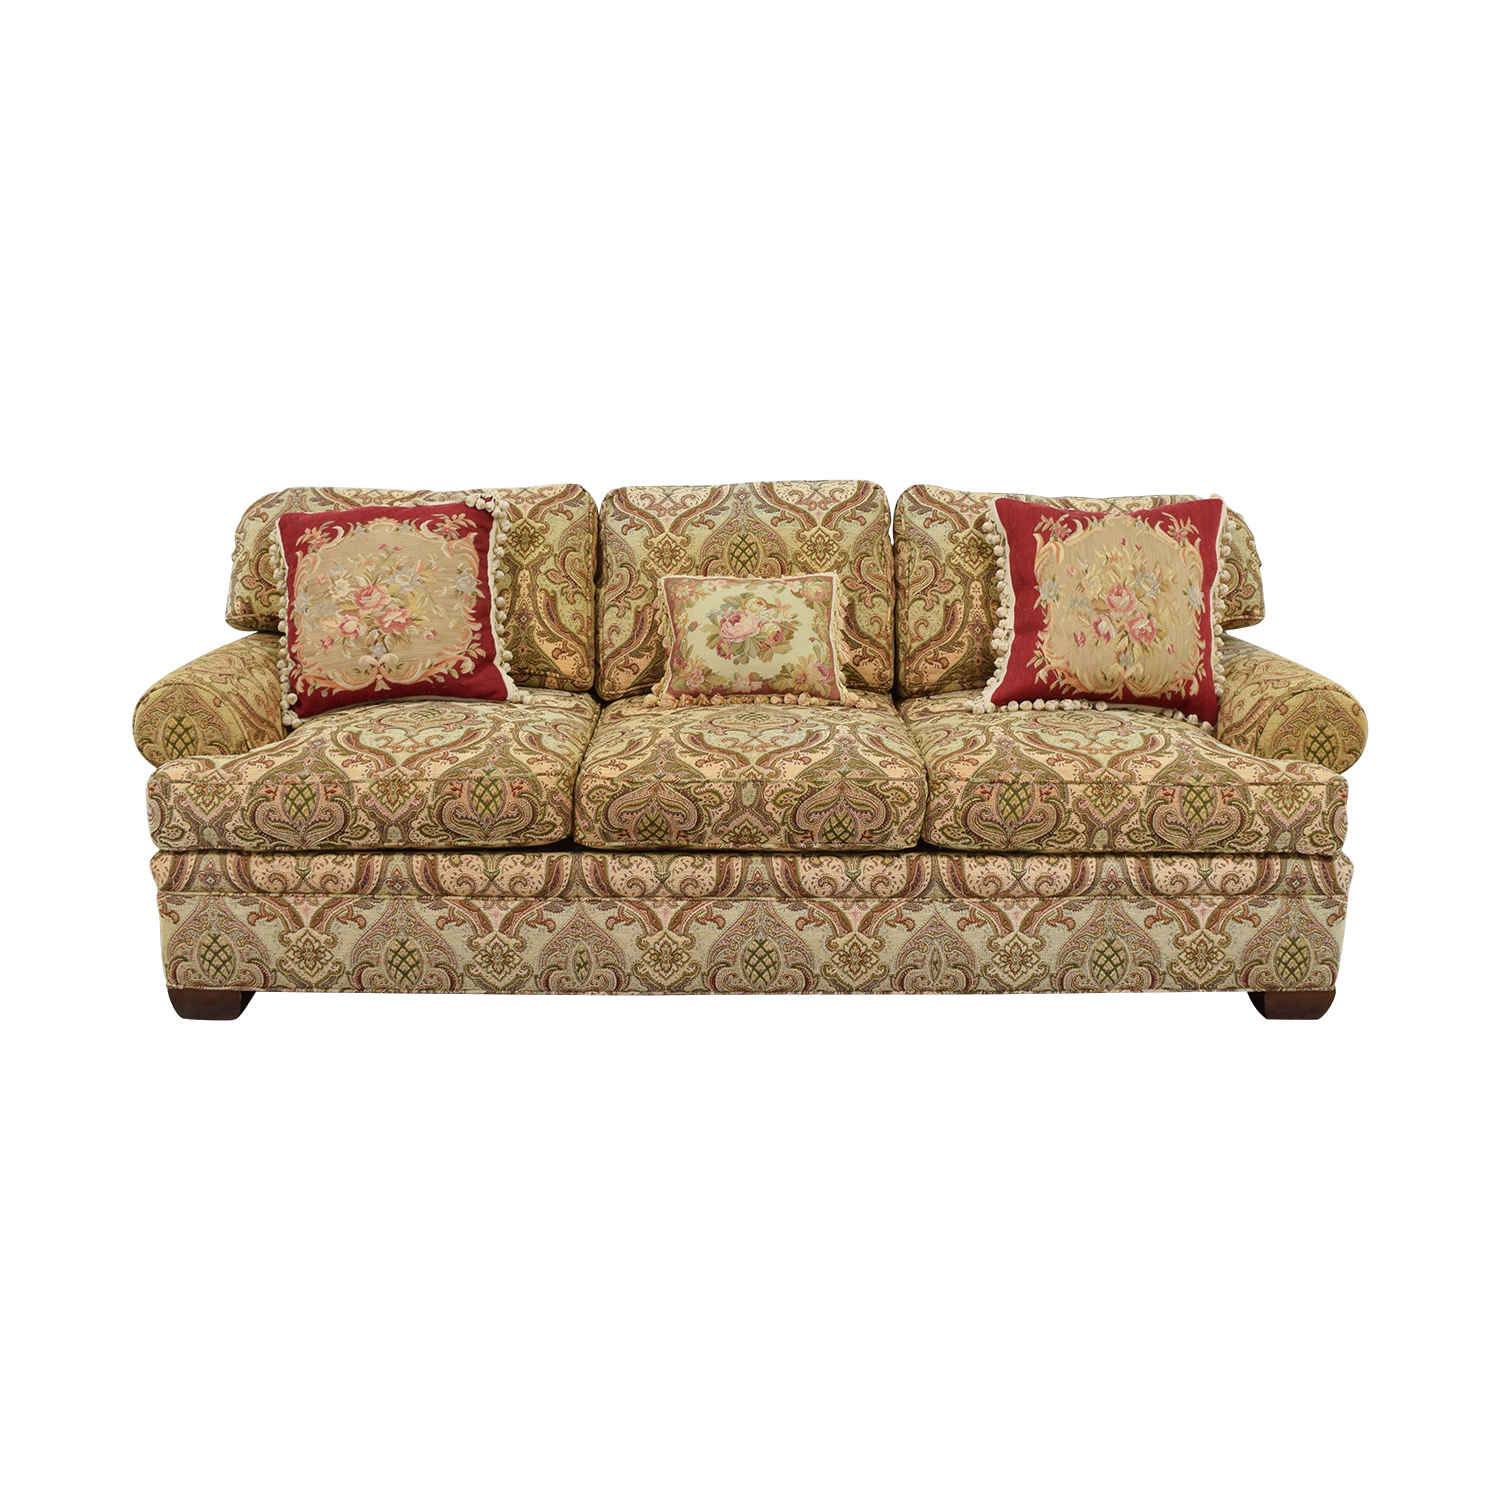 Kravet Kravet Custom Chenille Paisley Three-Cushion Sofa discount